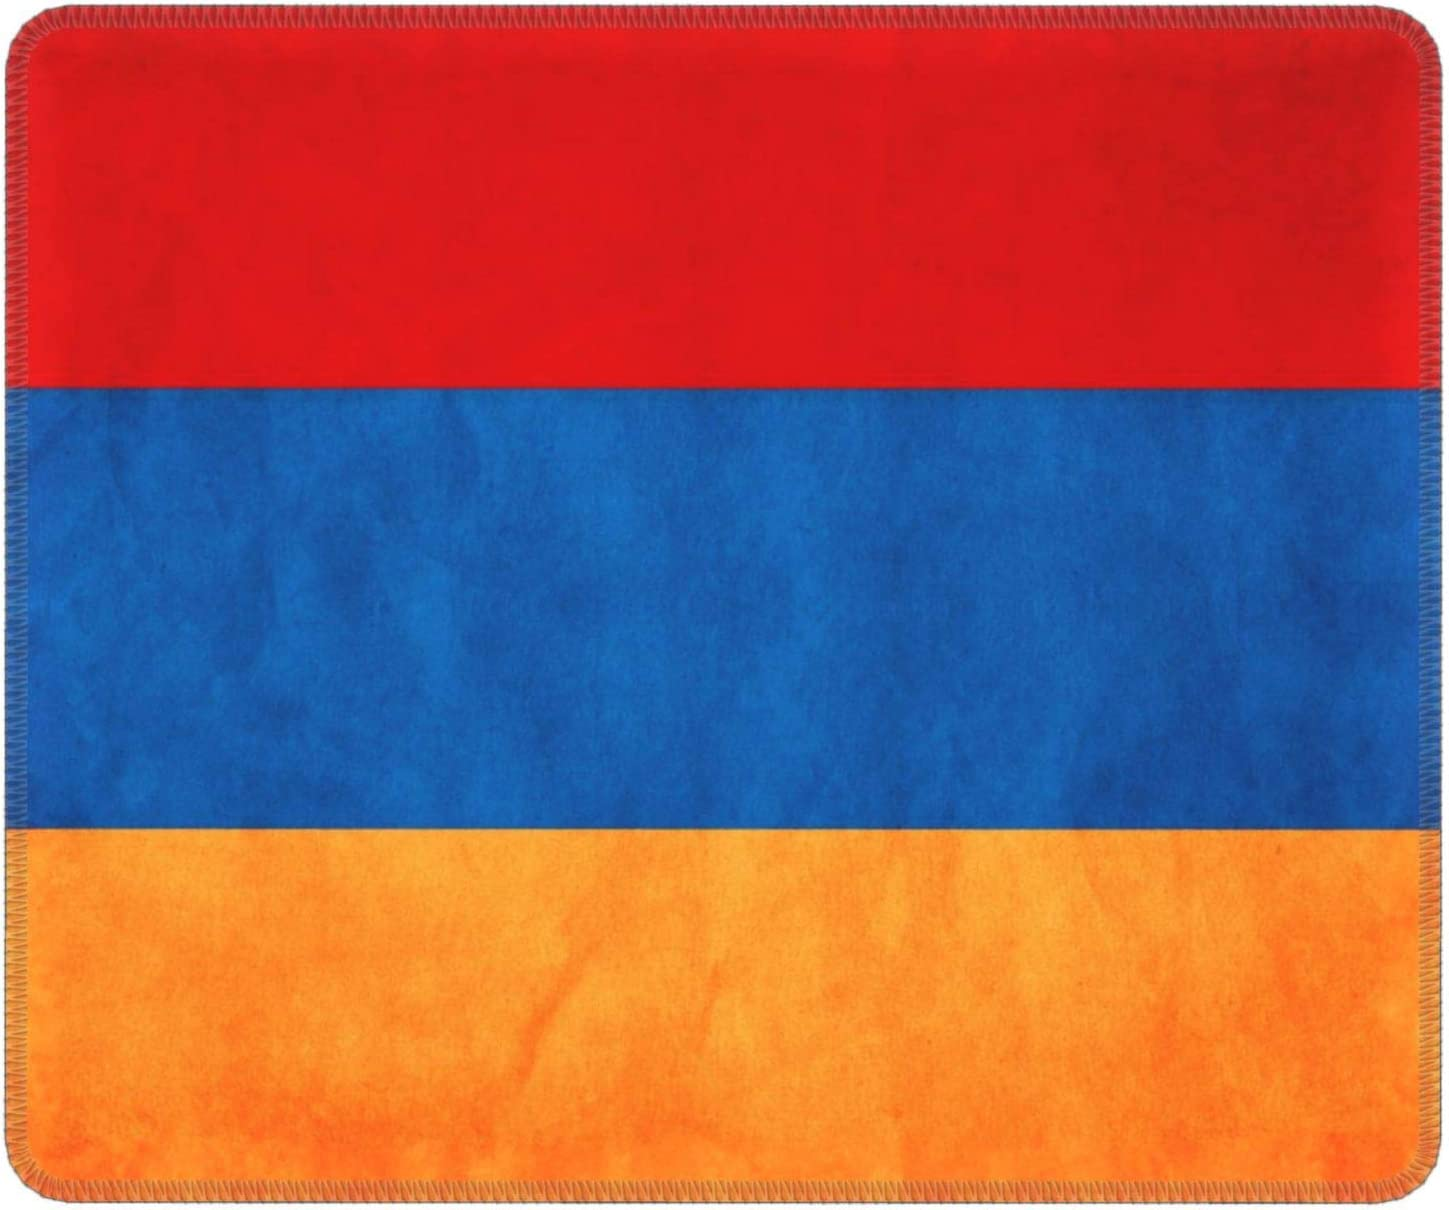 OHMYCOLOR Retro Armenia Flag Gaming Mouse Pad Mouse Mat Non-Slip Rubber Game Mousepad with Stitched Edge Wrist Rests Multifunctional Big Office Desk Pad for Pc Computer Laptop 7.9 X 9.5 in